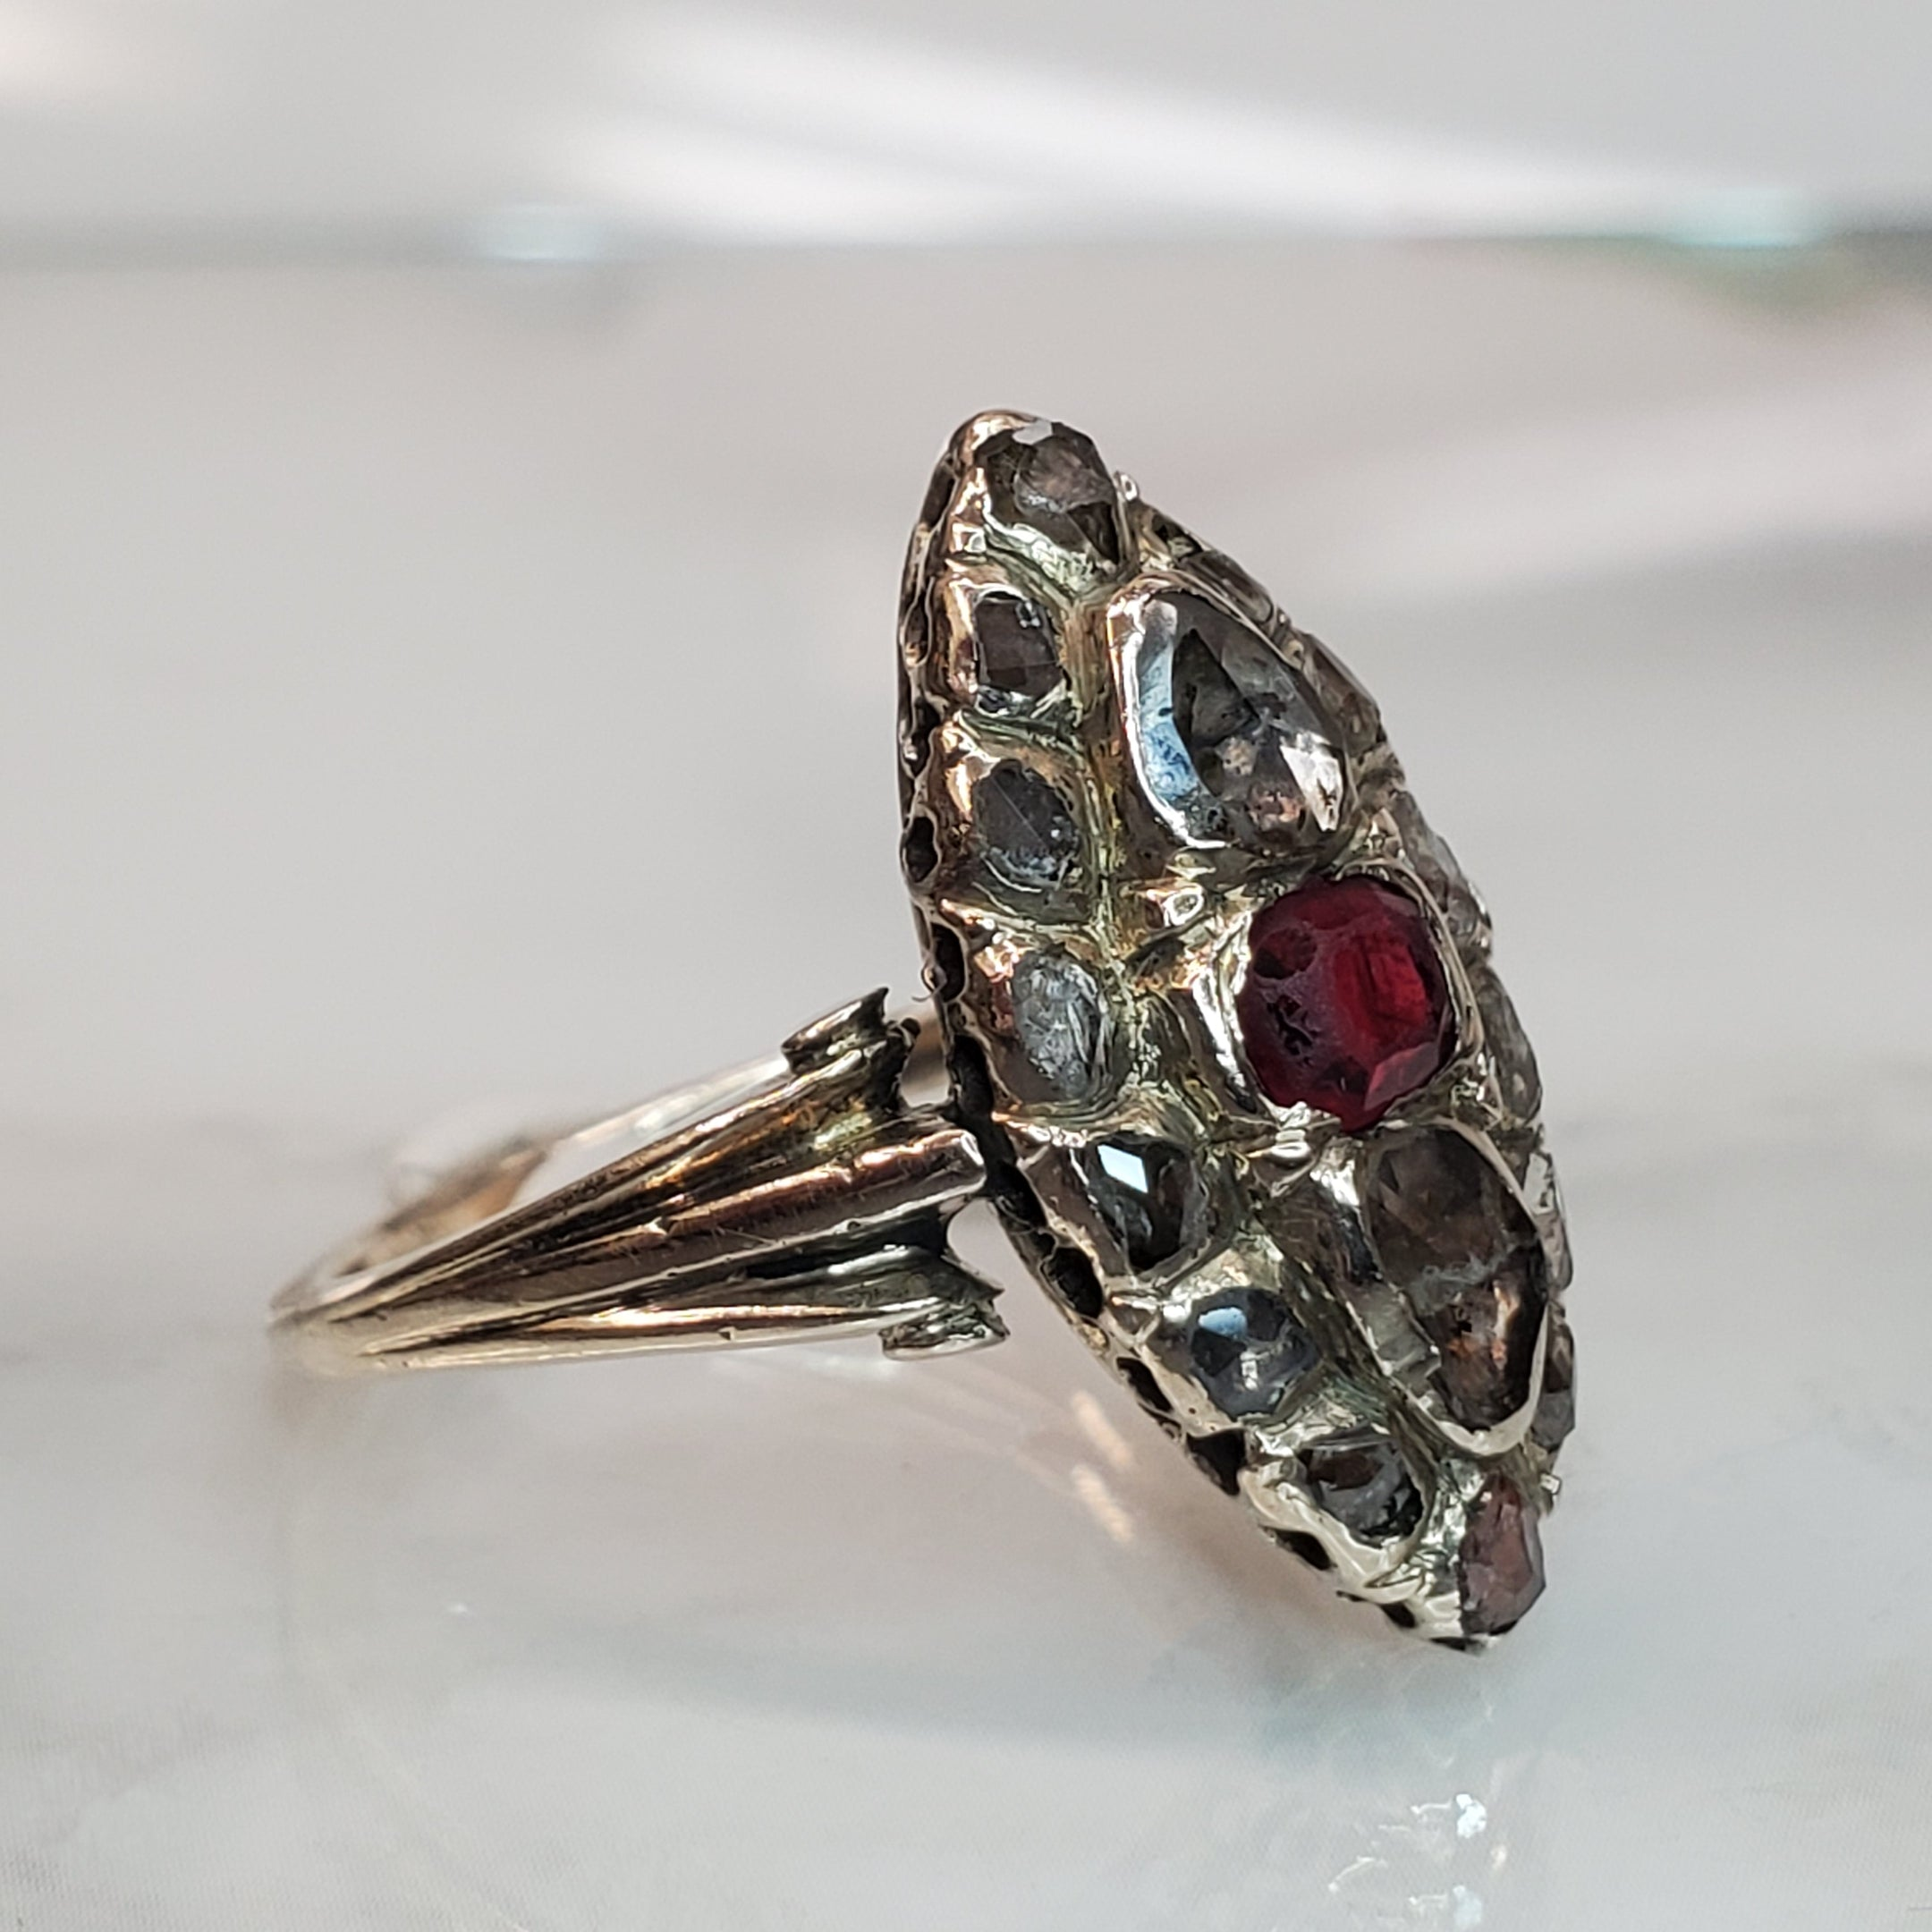 Antique Silver & 10 karat white gold navette ring with red spinel and antique diamonds